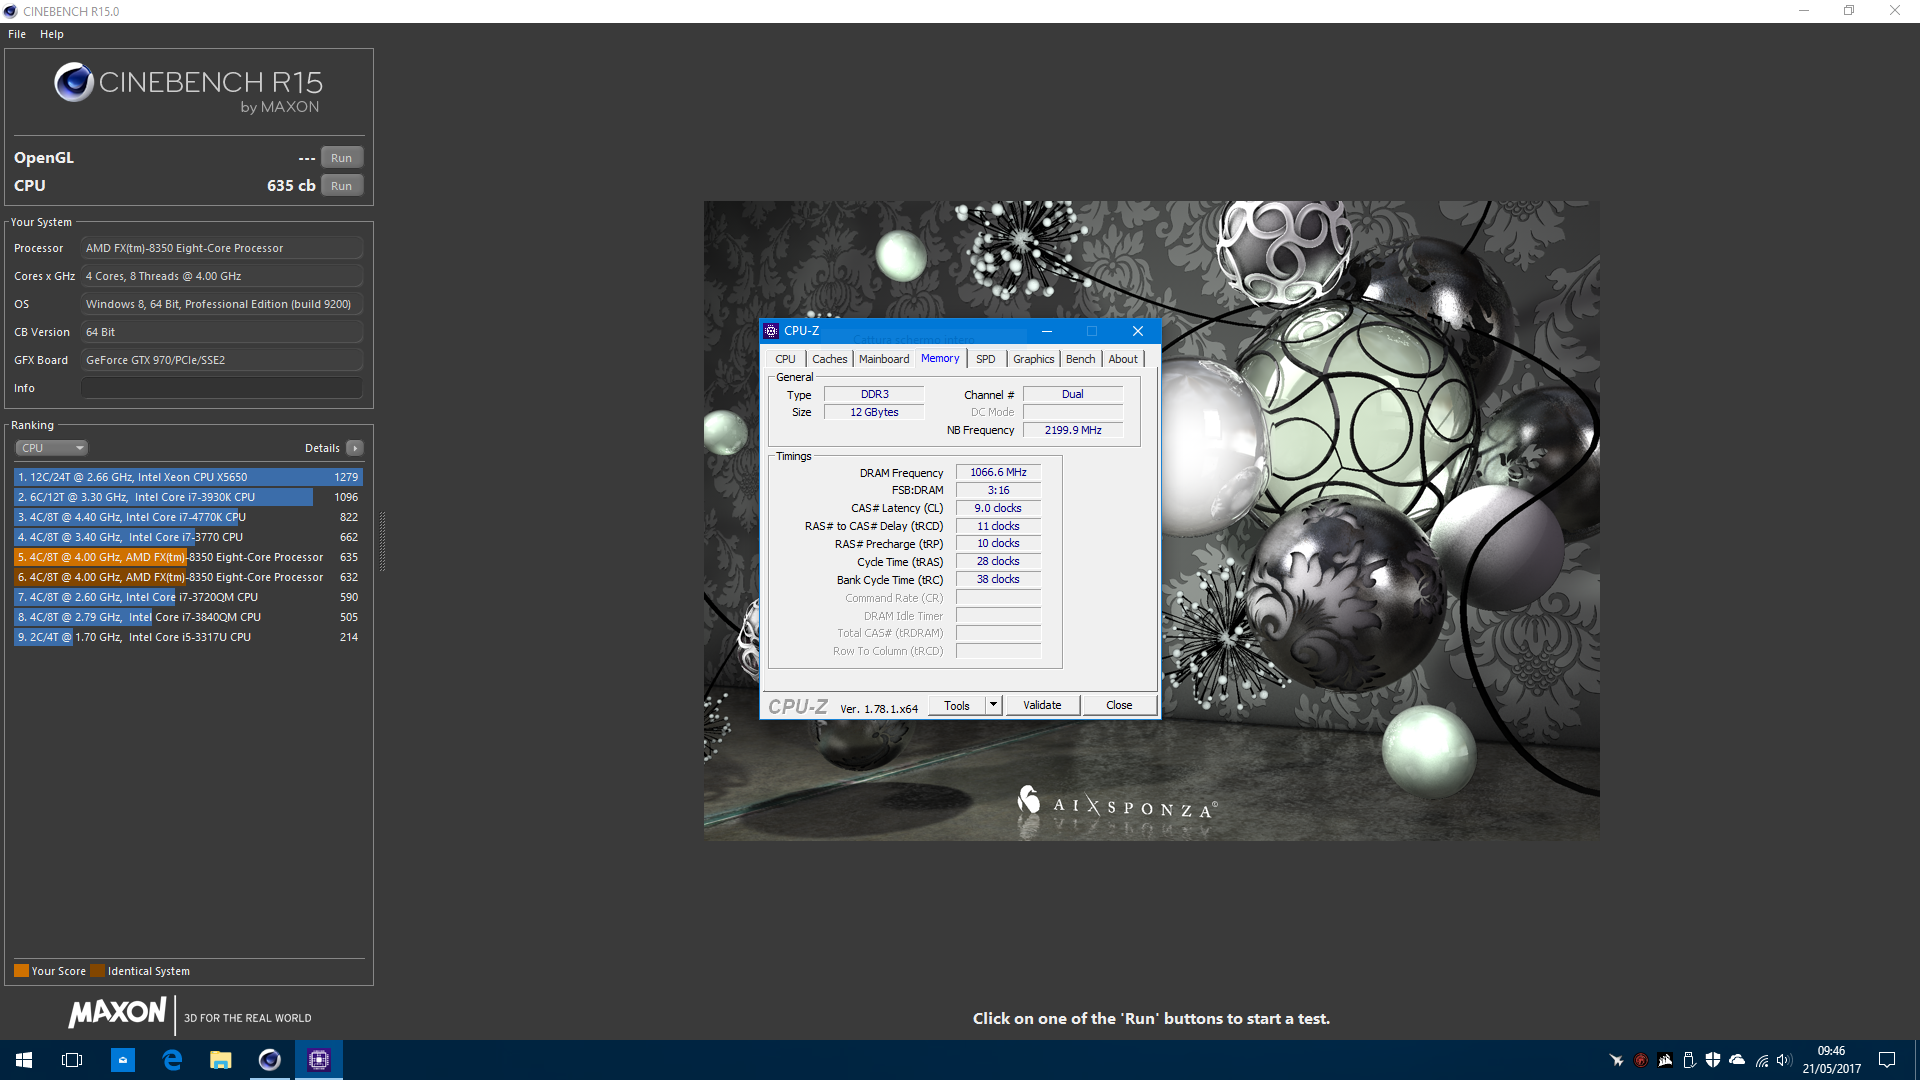 Danny_theBest`s Cinebench - R15 score: 635 cb with a FX-8350